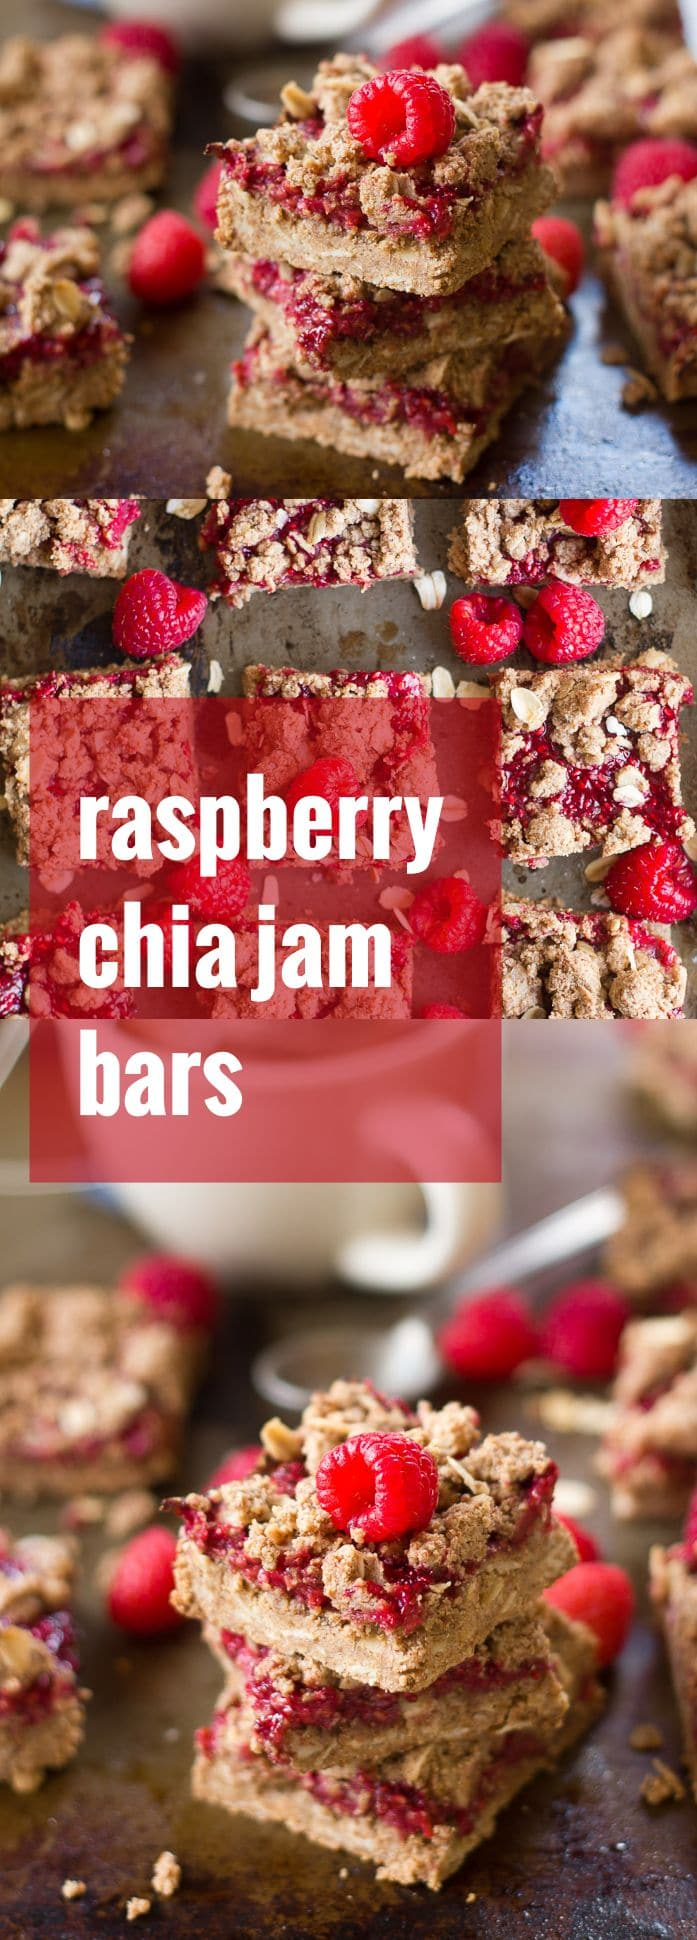 Almond Butter Raspberry Chia Jam Bars